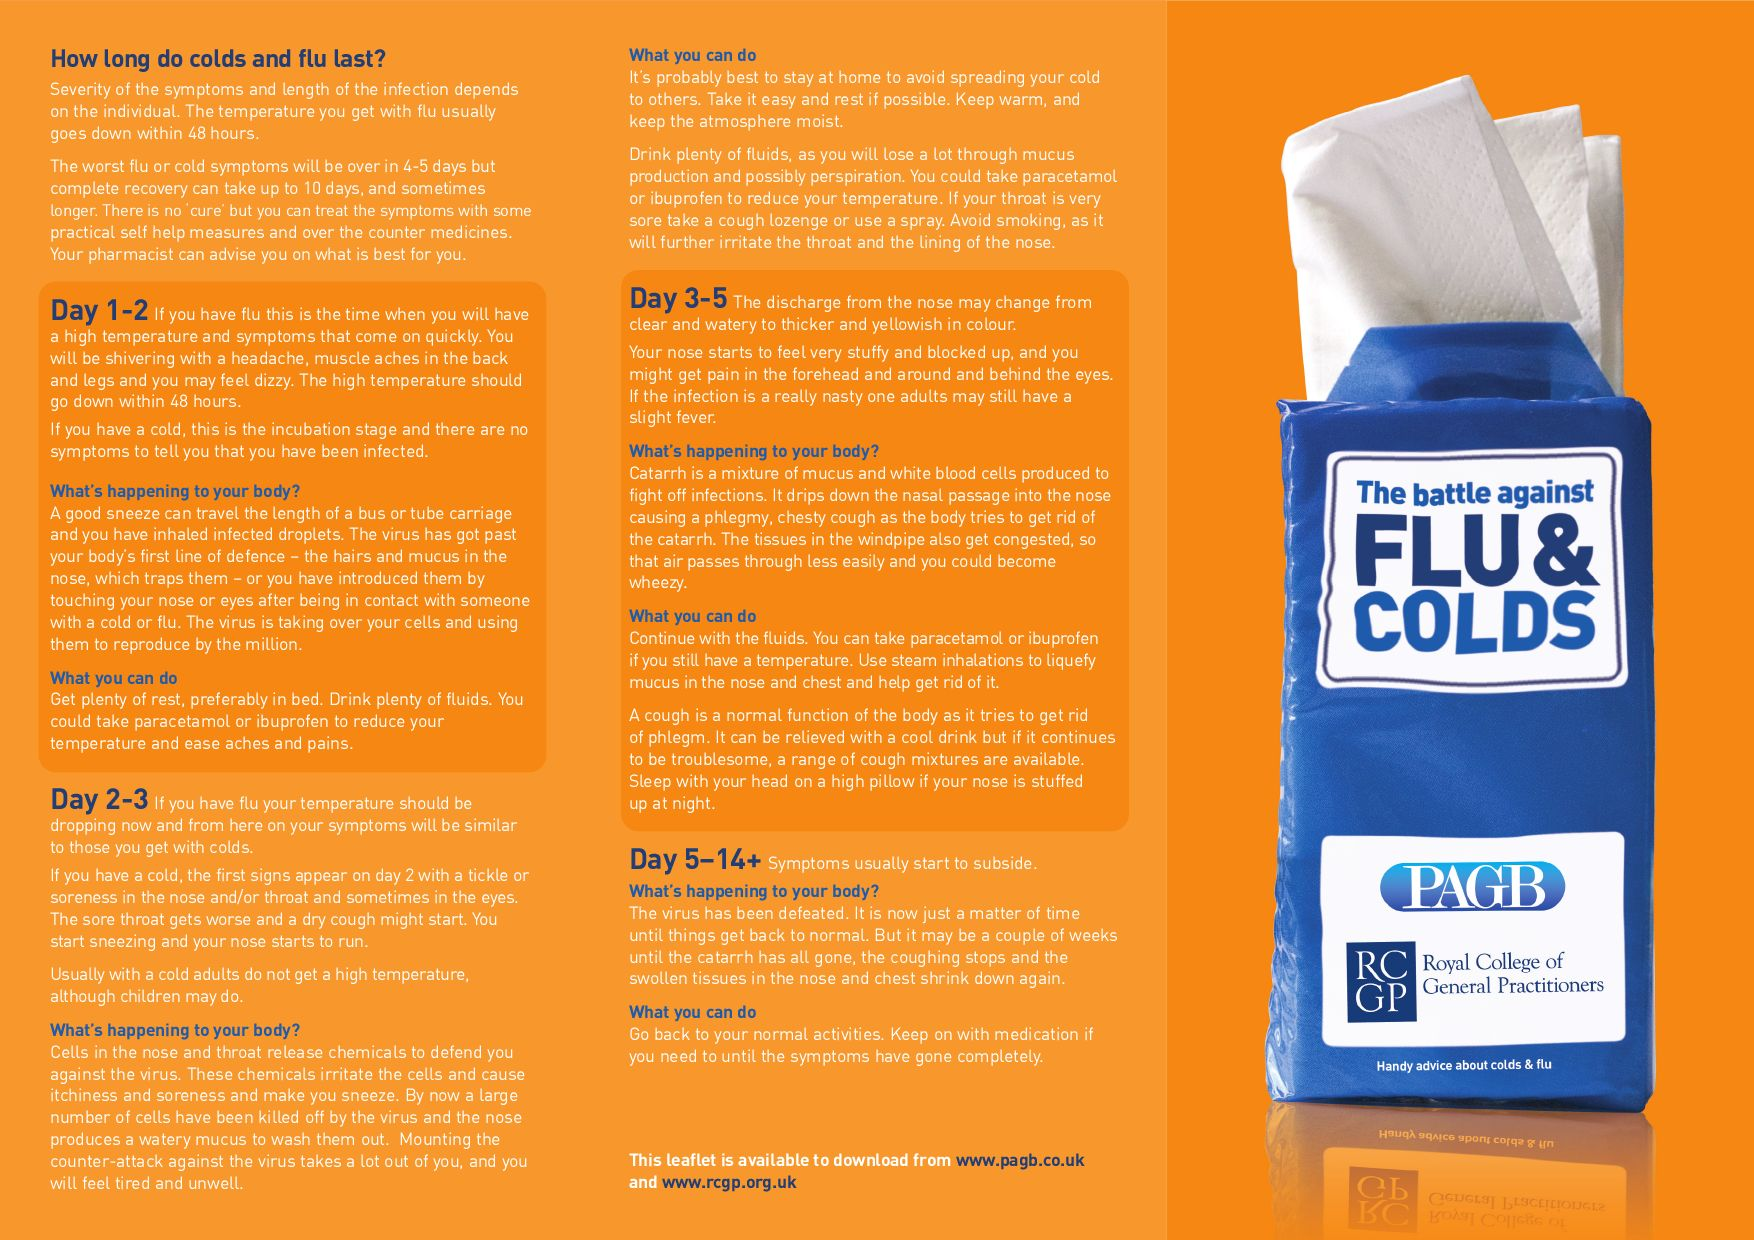 http://www rcgp org uk/PDF/The_Battle_Against_Cold_And_Flu by Royal